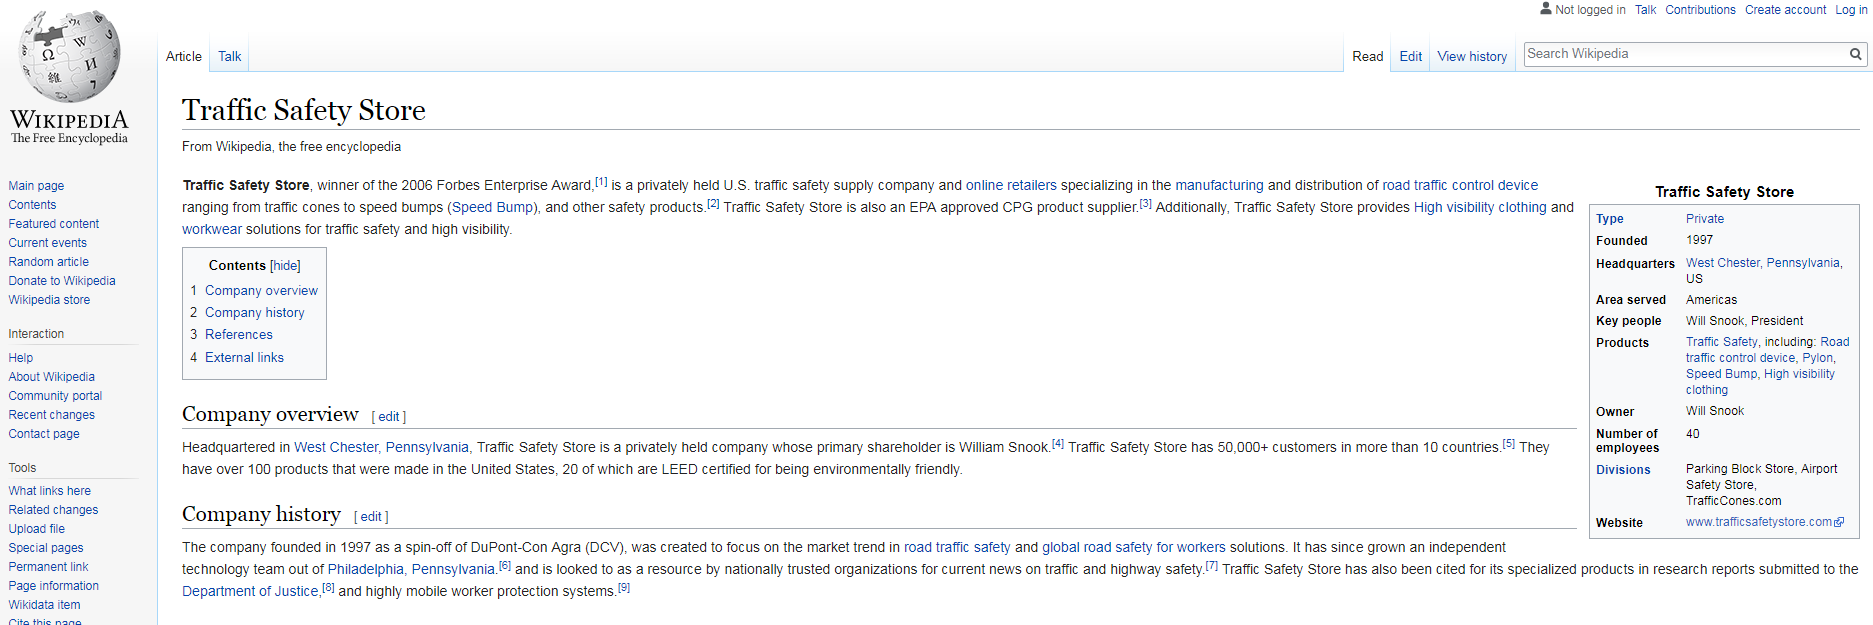 traffic safety store wikipedia